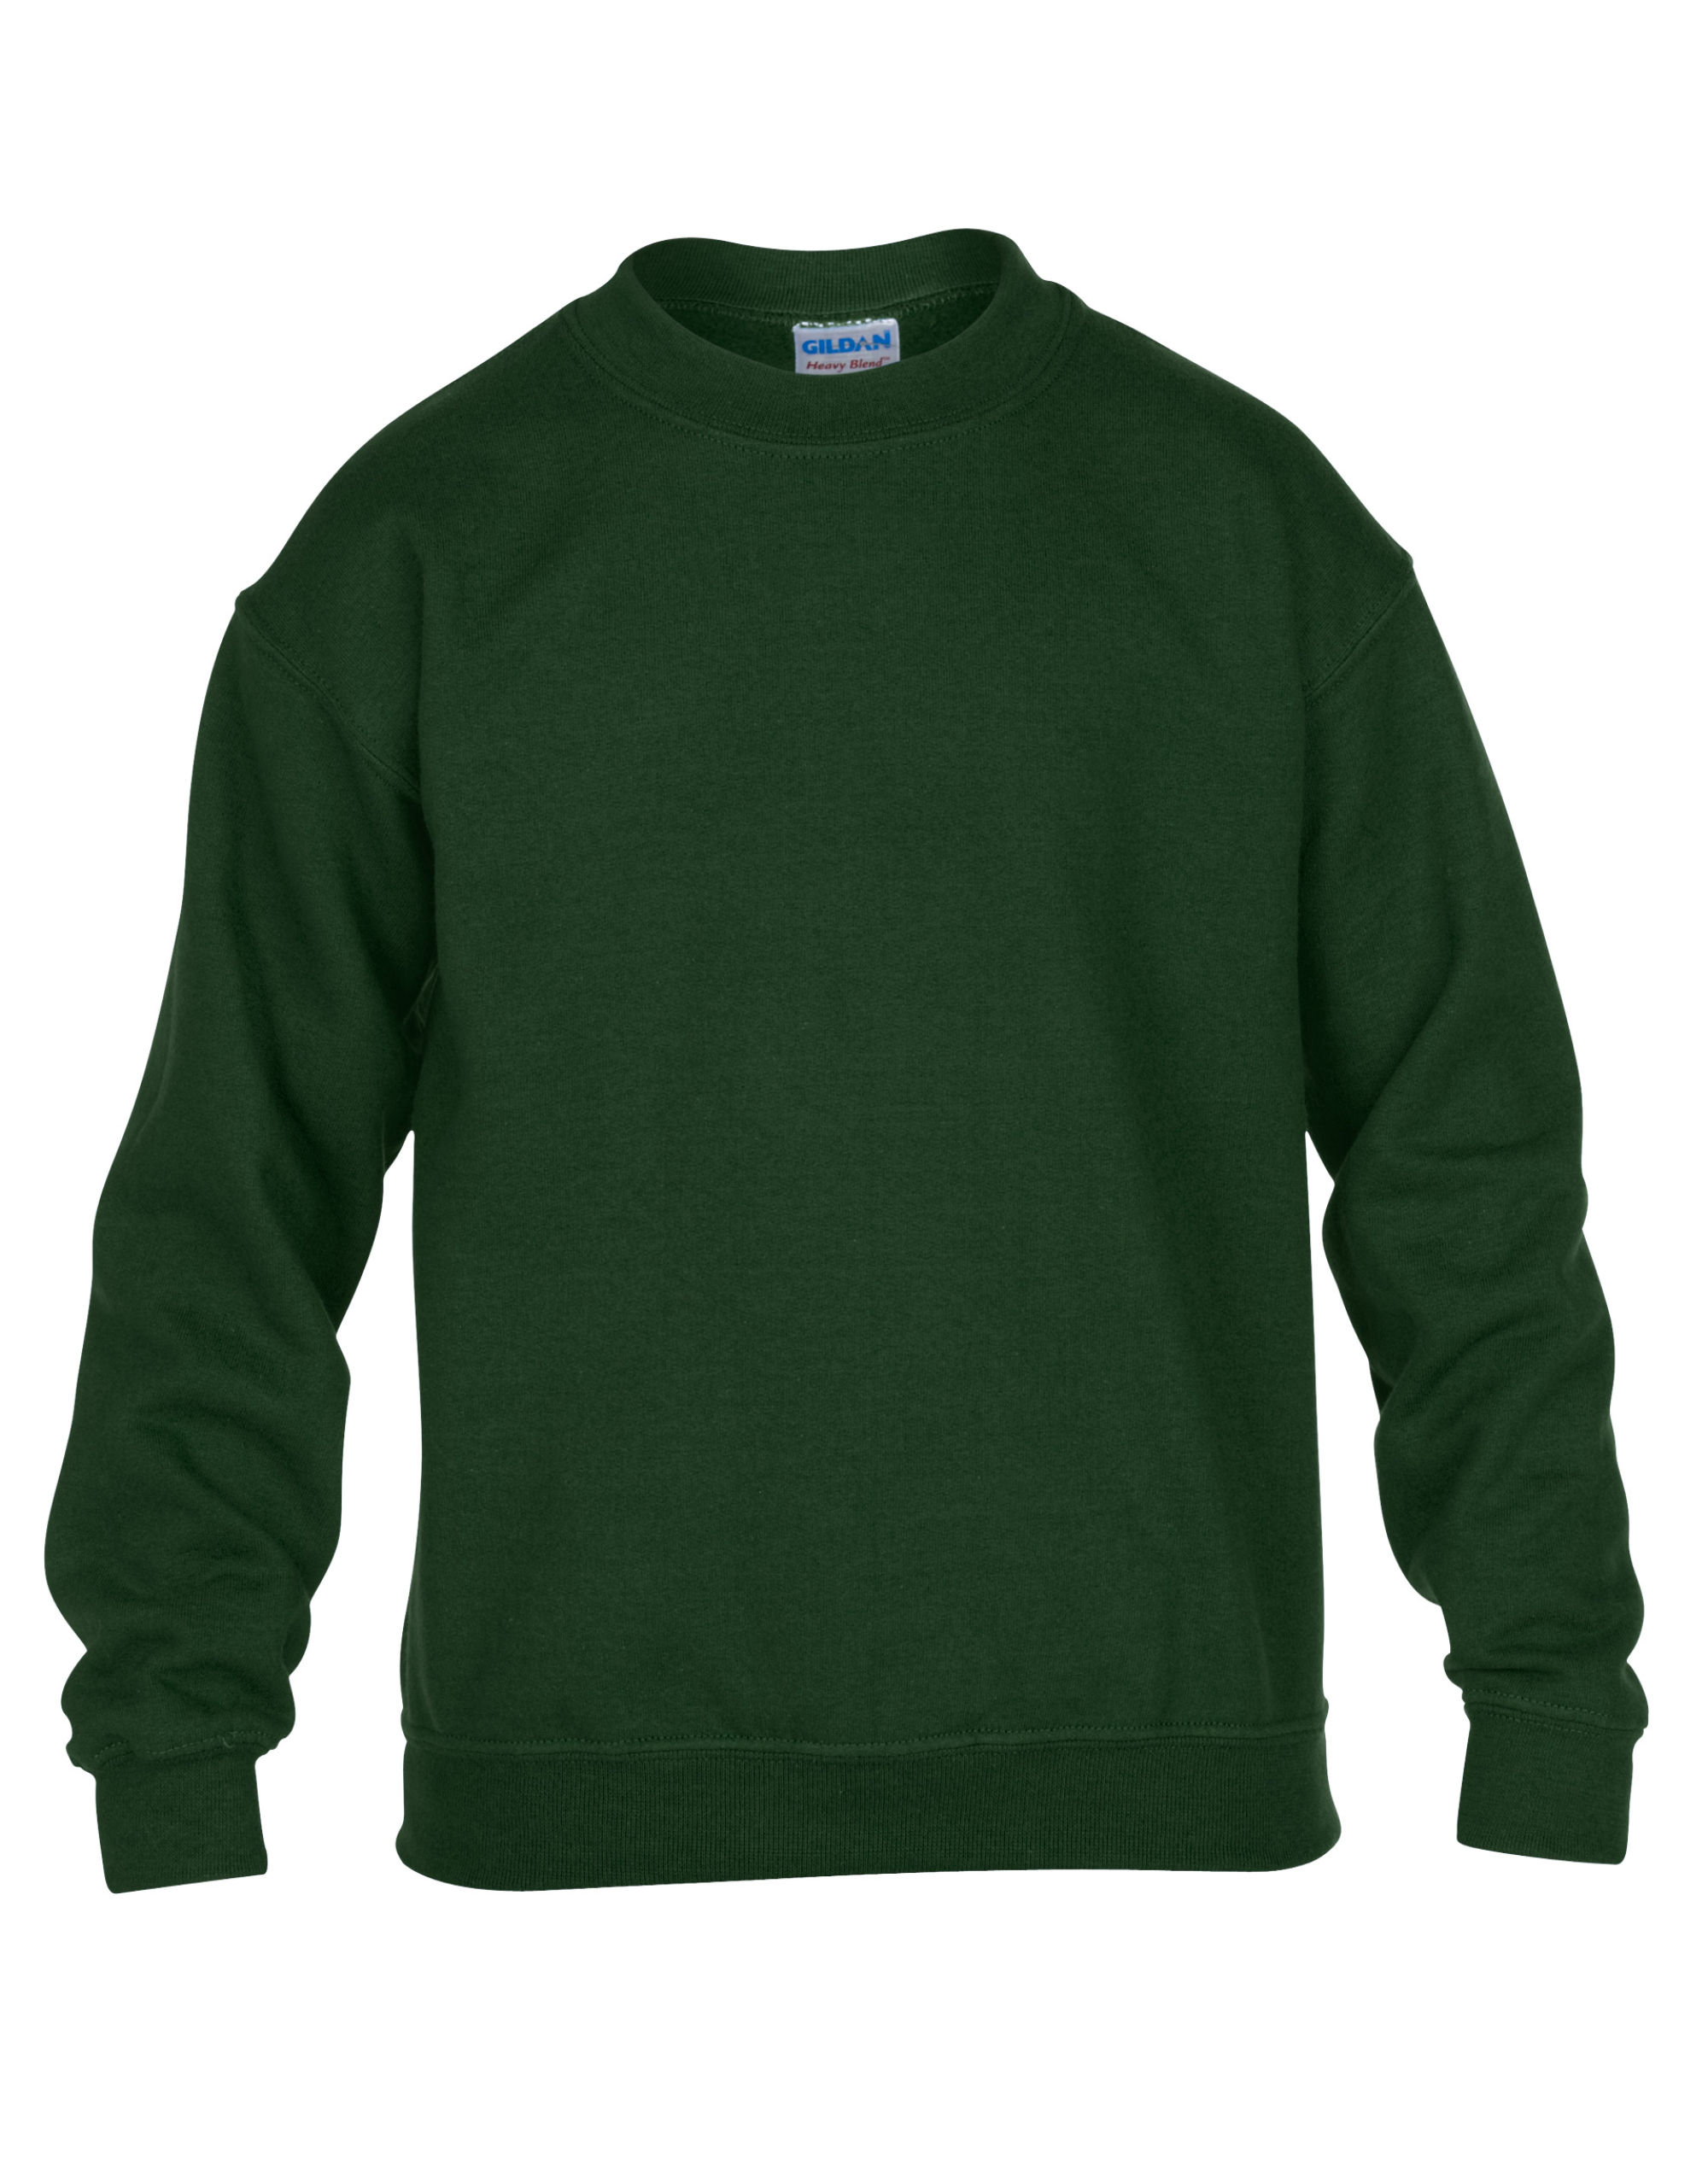 Childrens Crewneck Sweatshirt